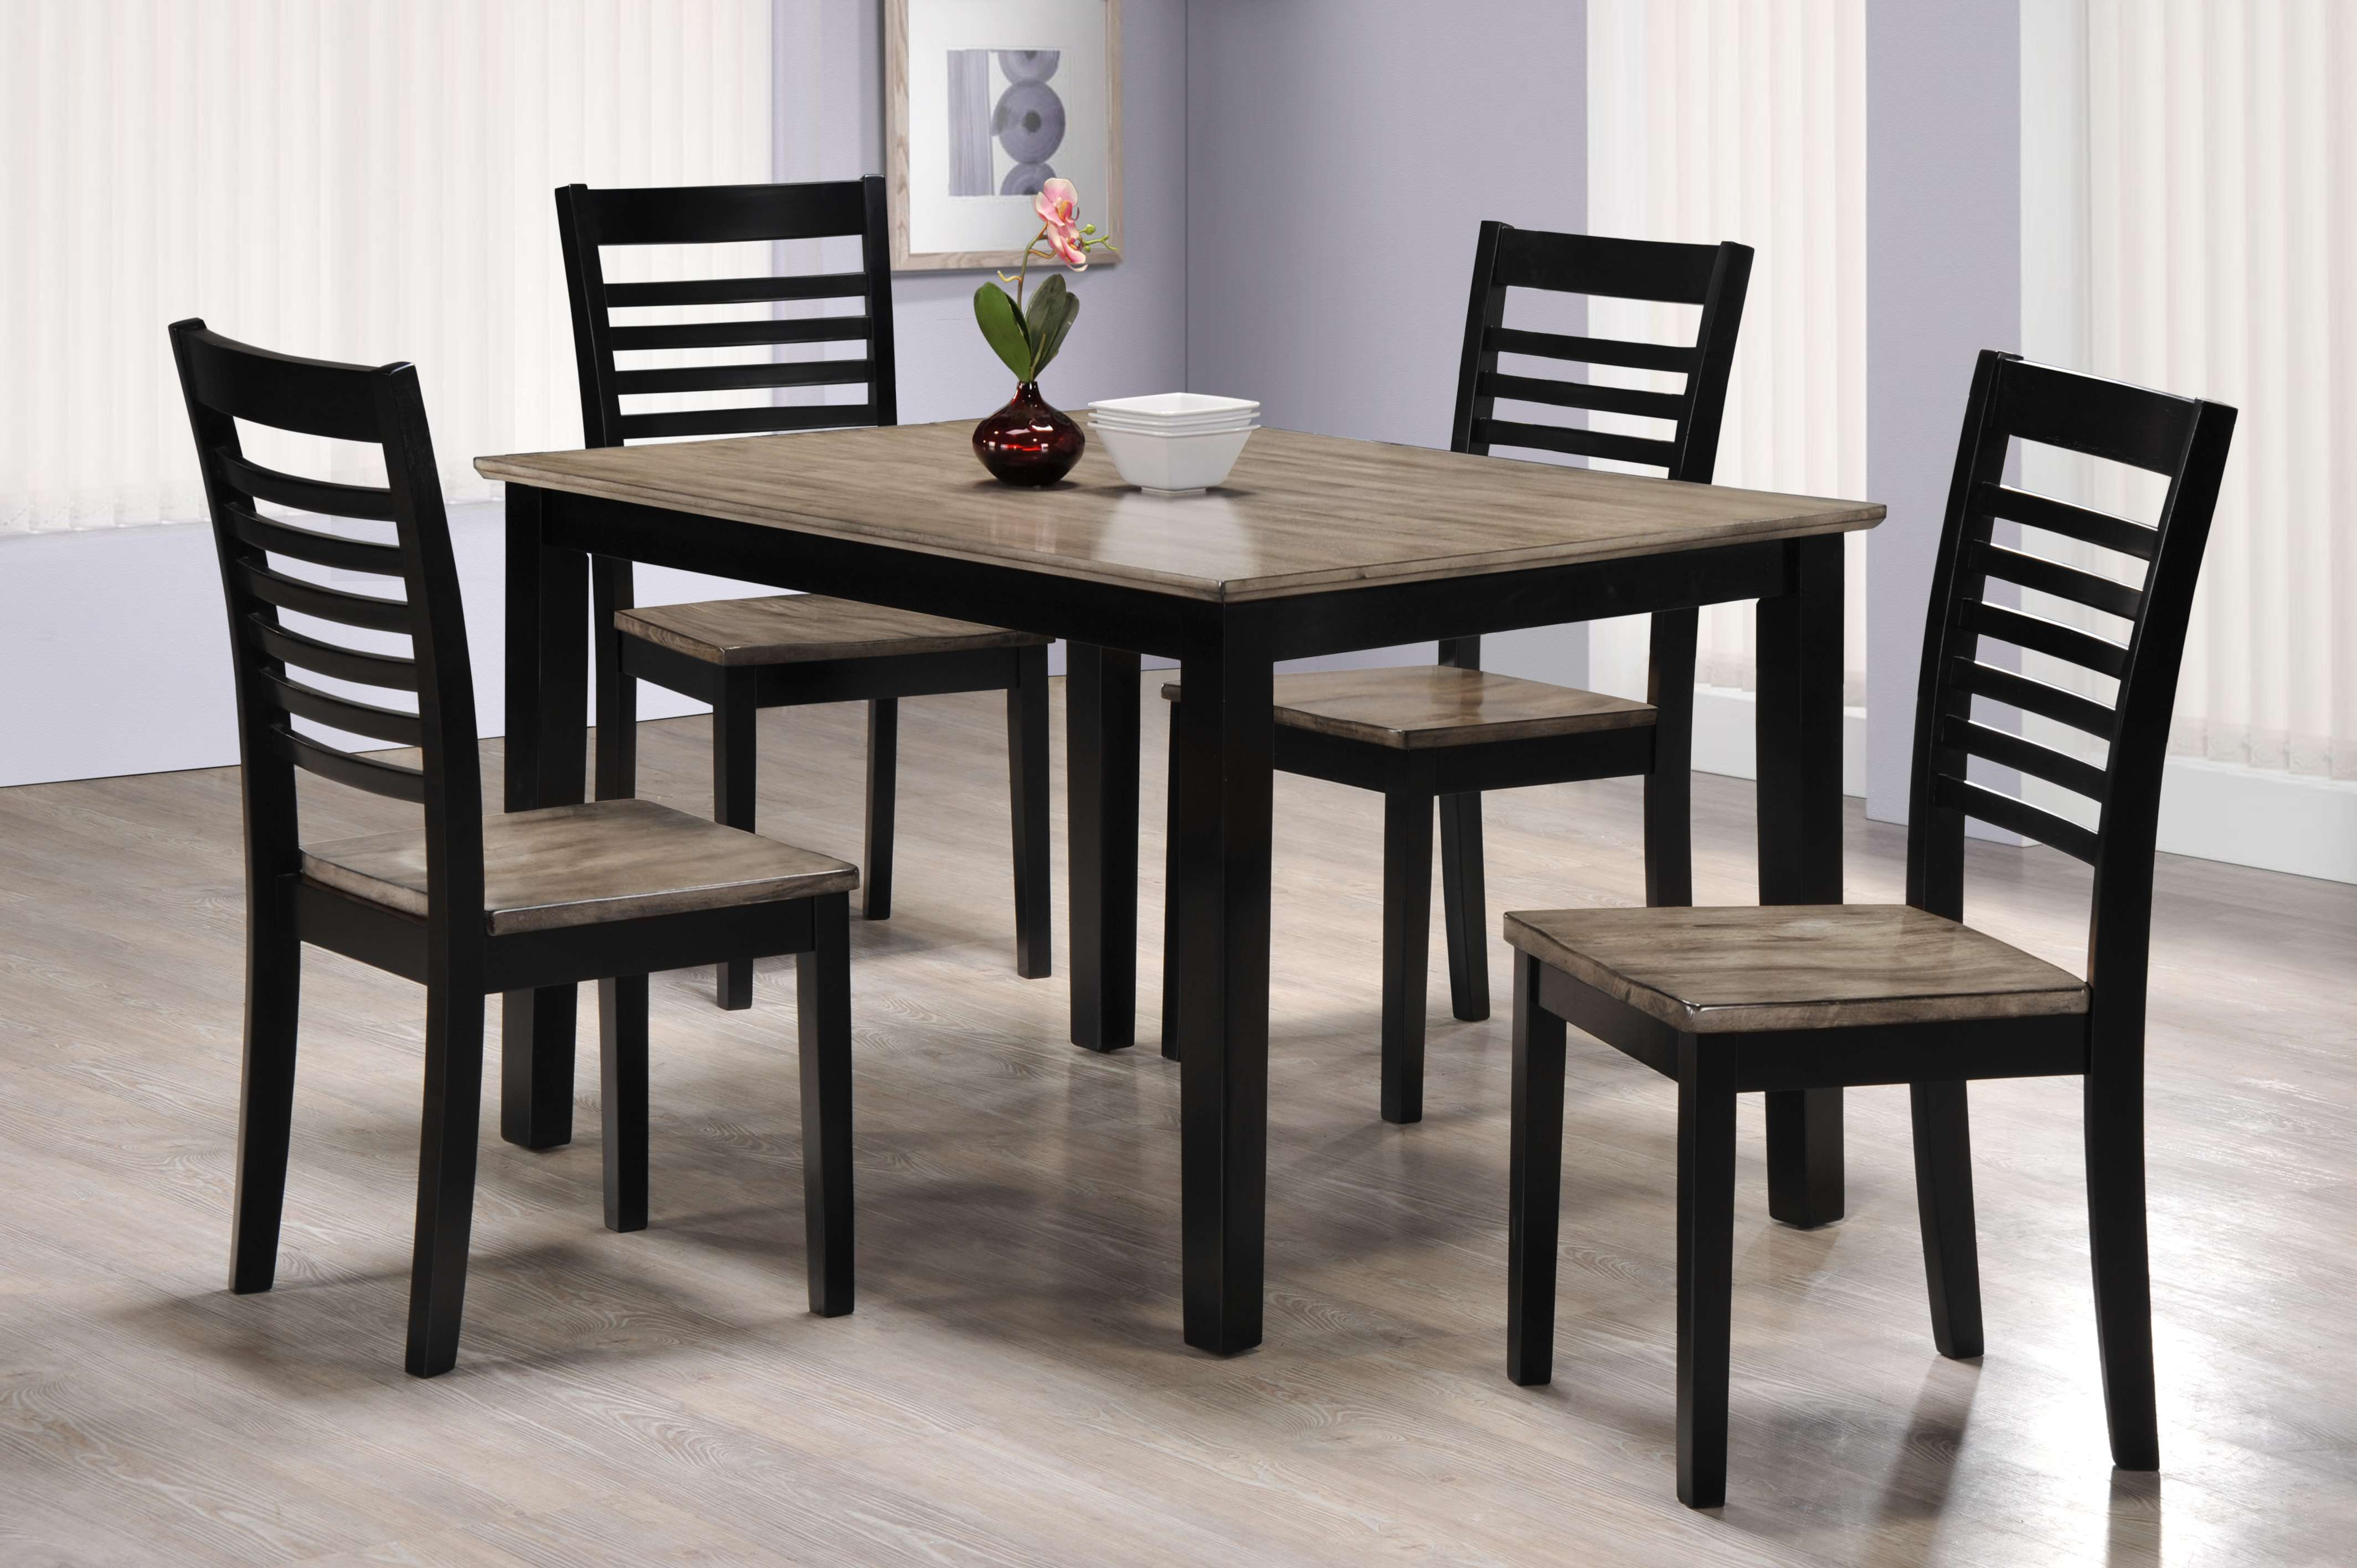 East pointe ebony and gray 5 piece dining set